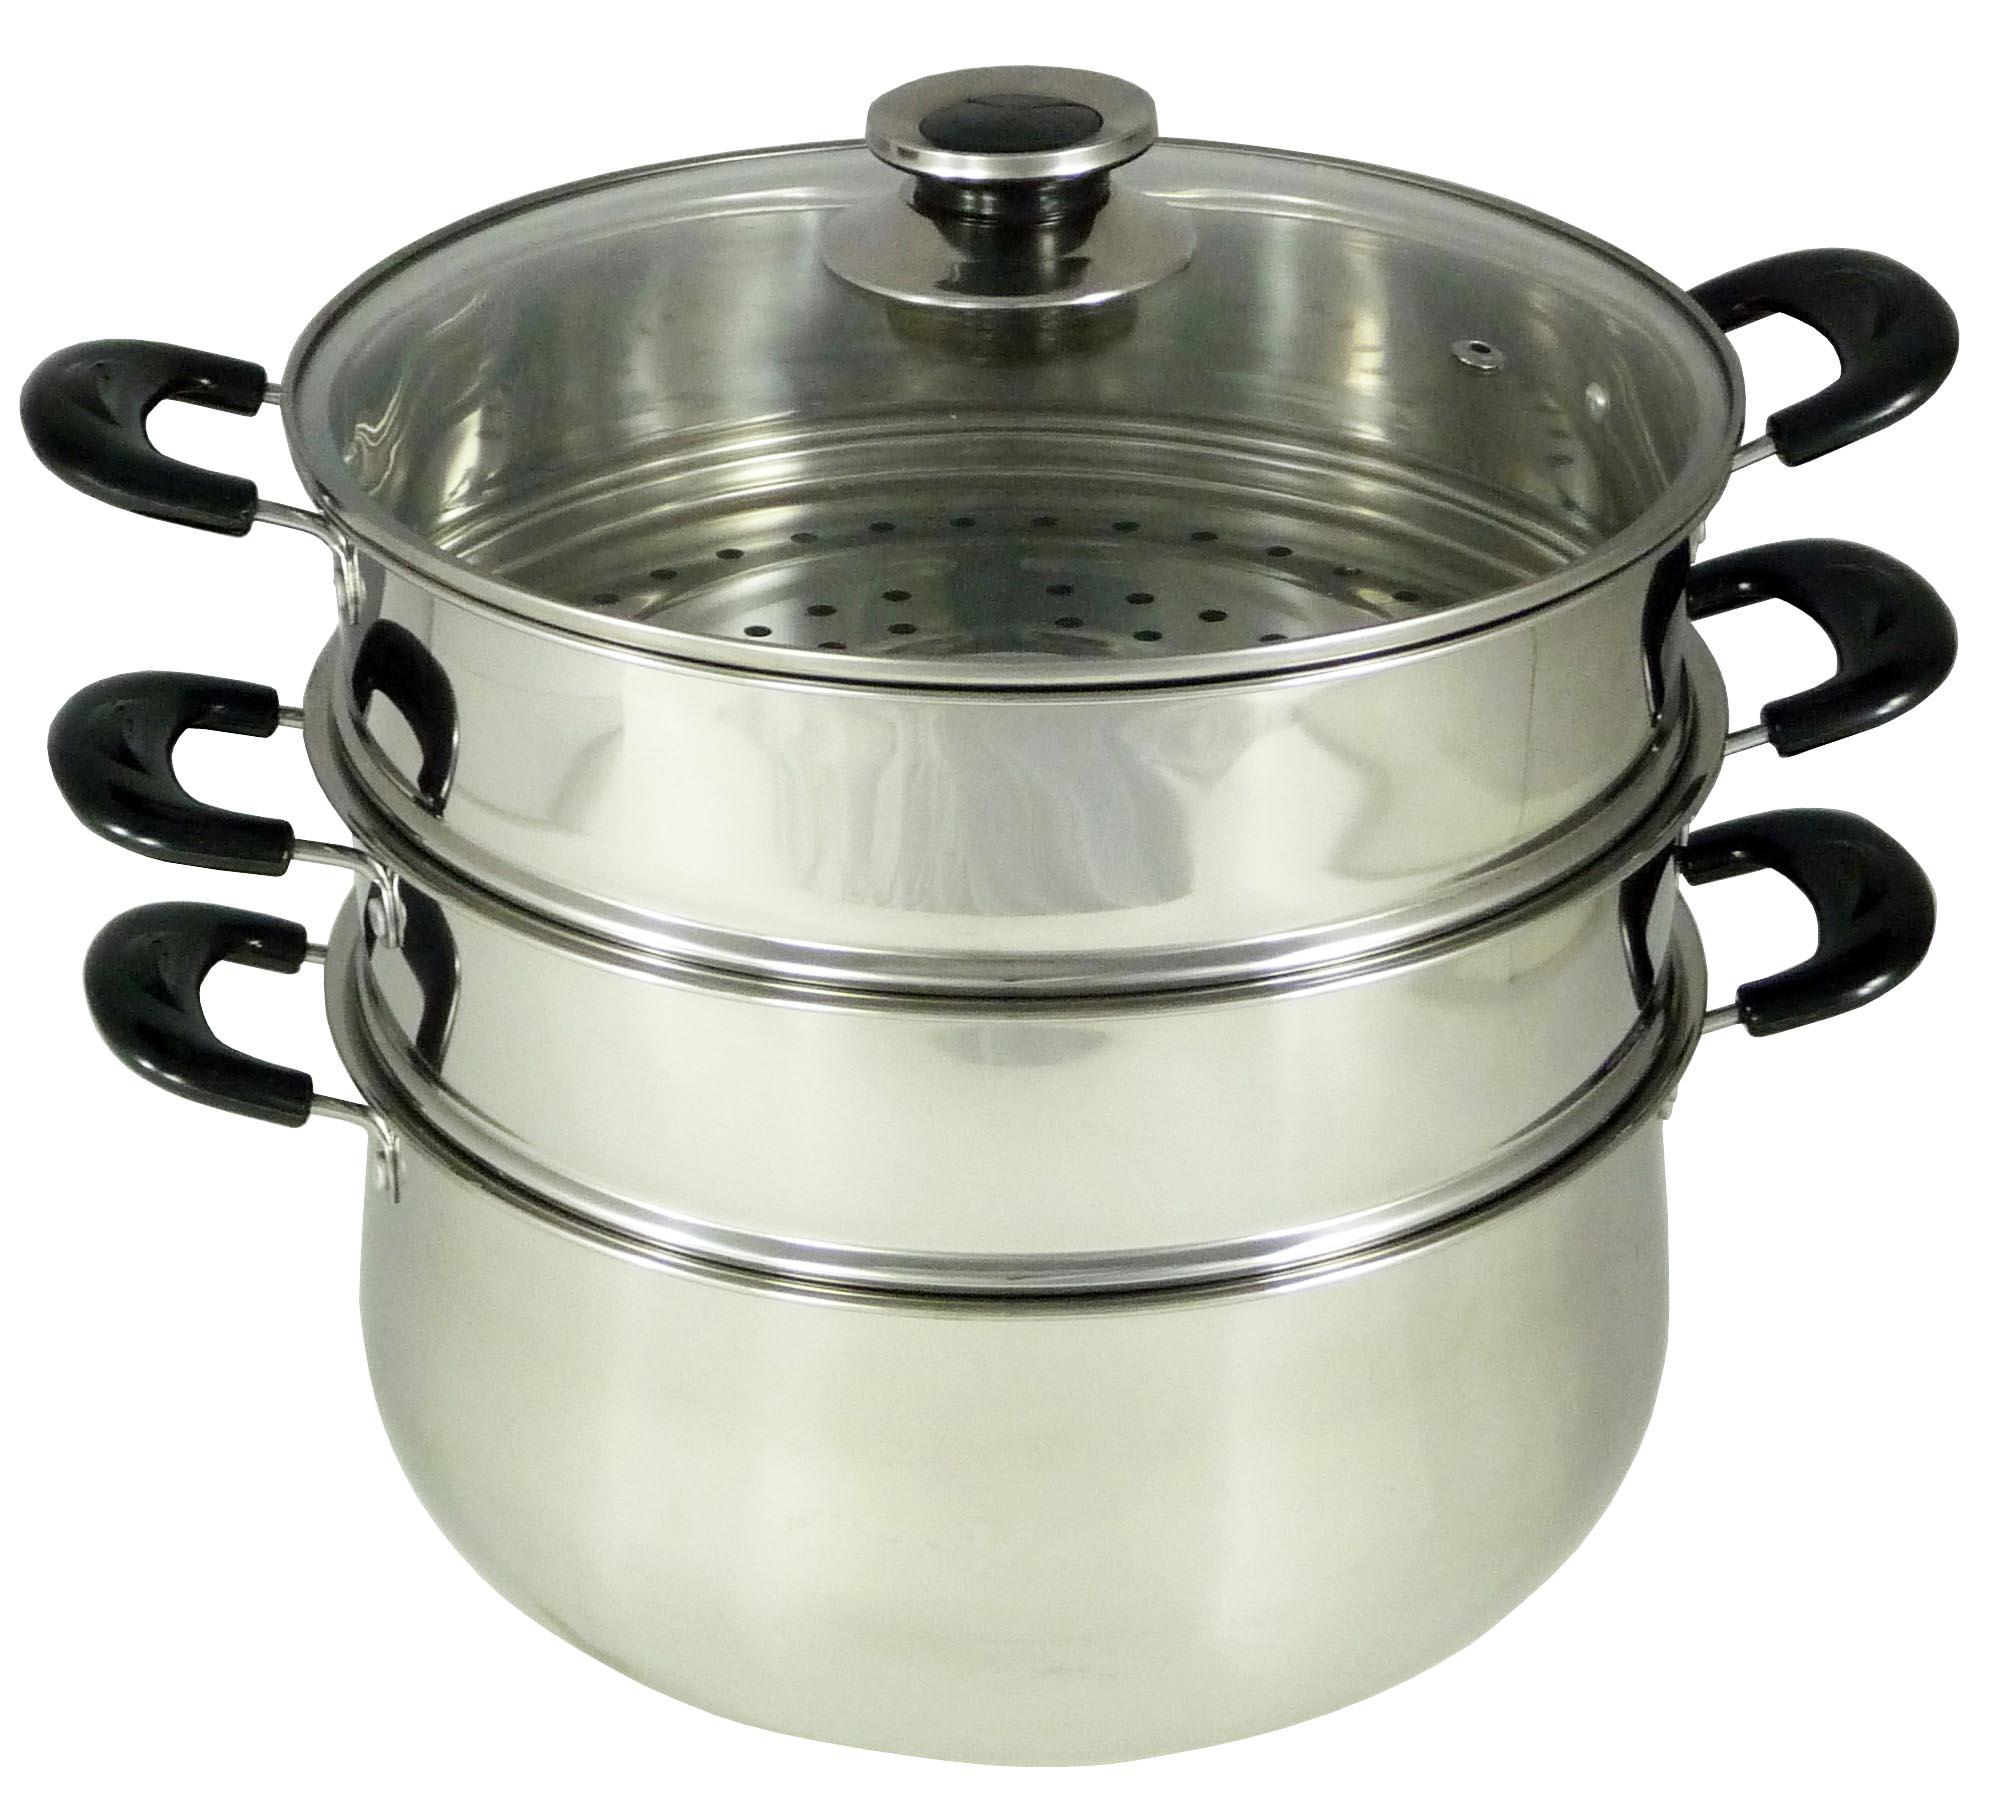 2019 CONCORD Stainless Steel 3 Tier Steamer Steam Pot Cookware 30cm From Concord, $43.22